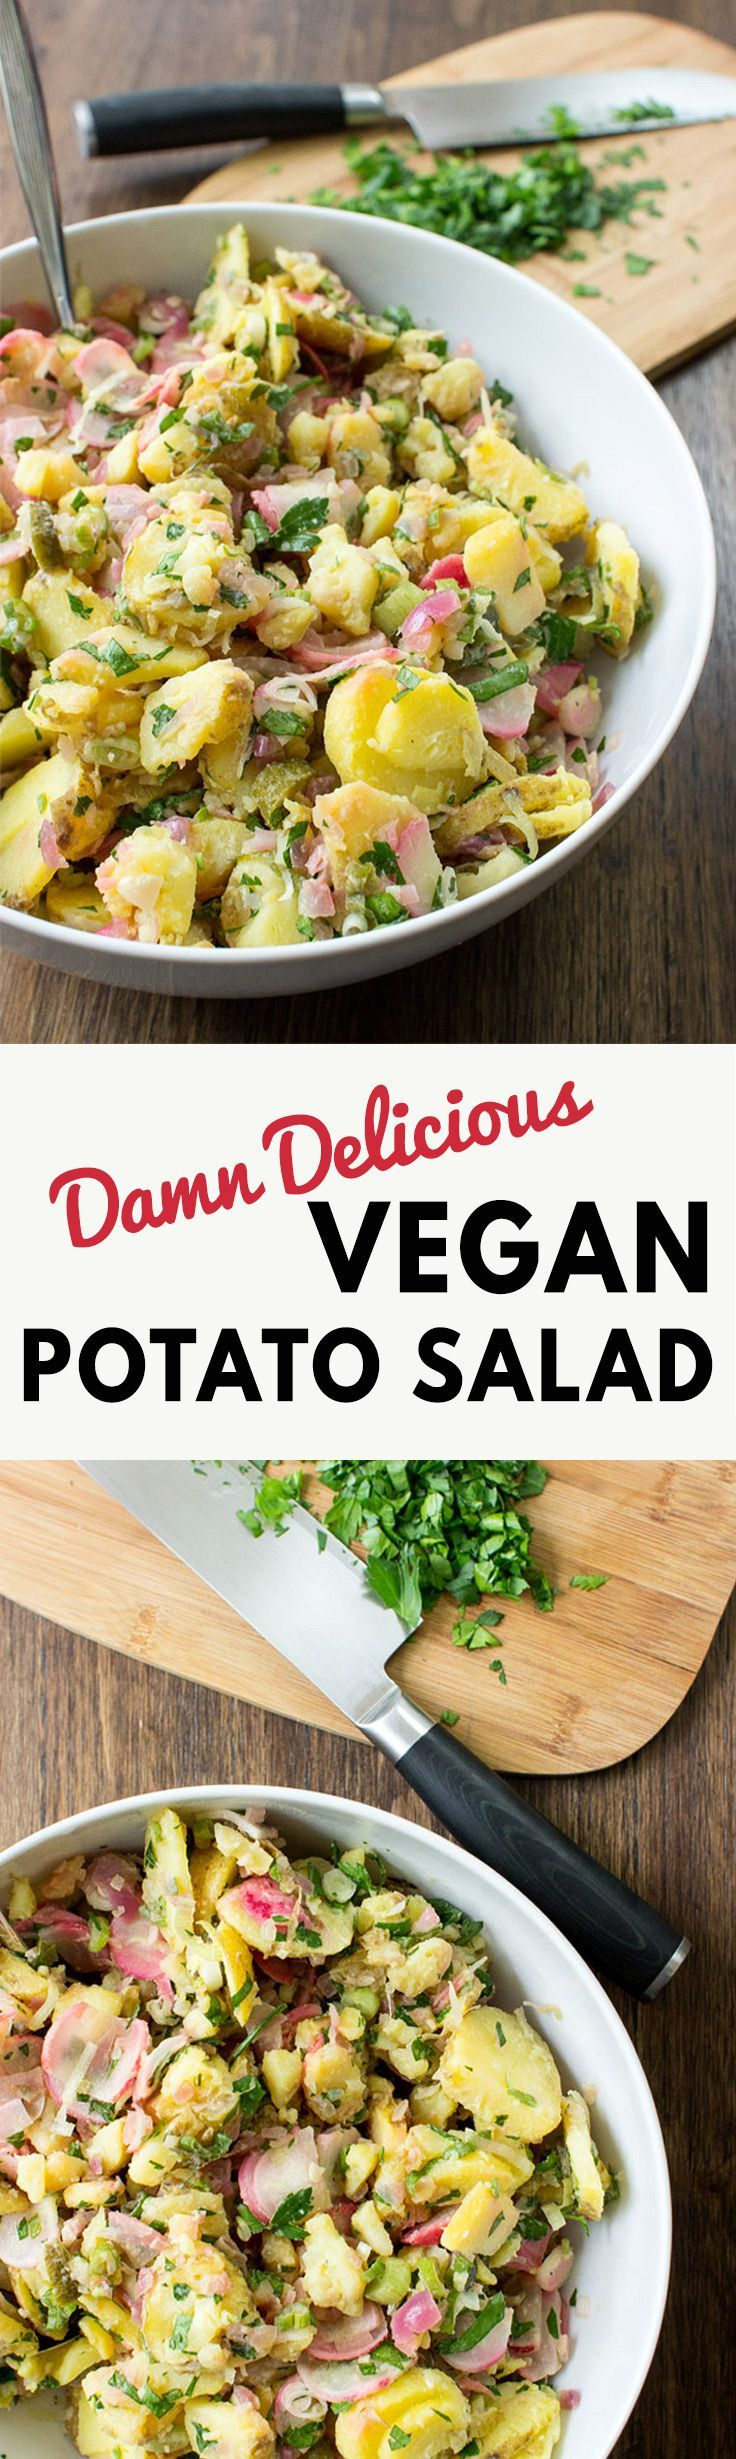 Damn Delicious Vegan Potato Salad - No Oil, No Mayo | hurrythefoodup.com